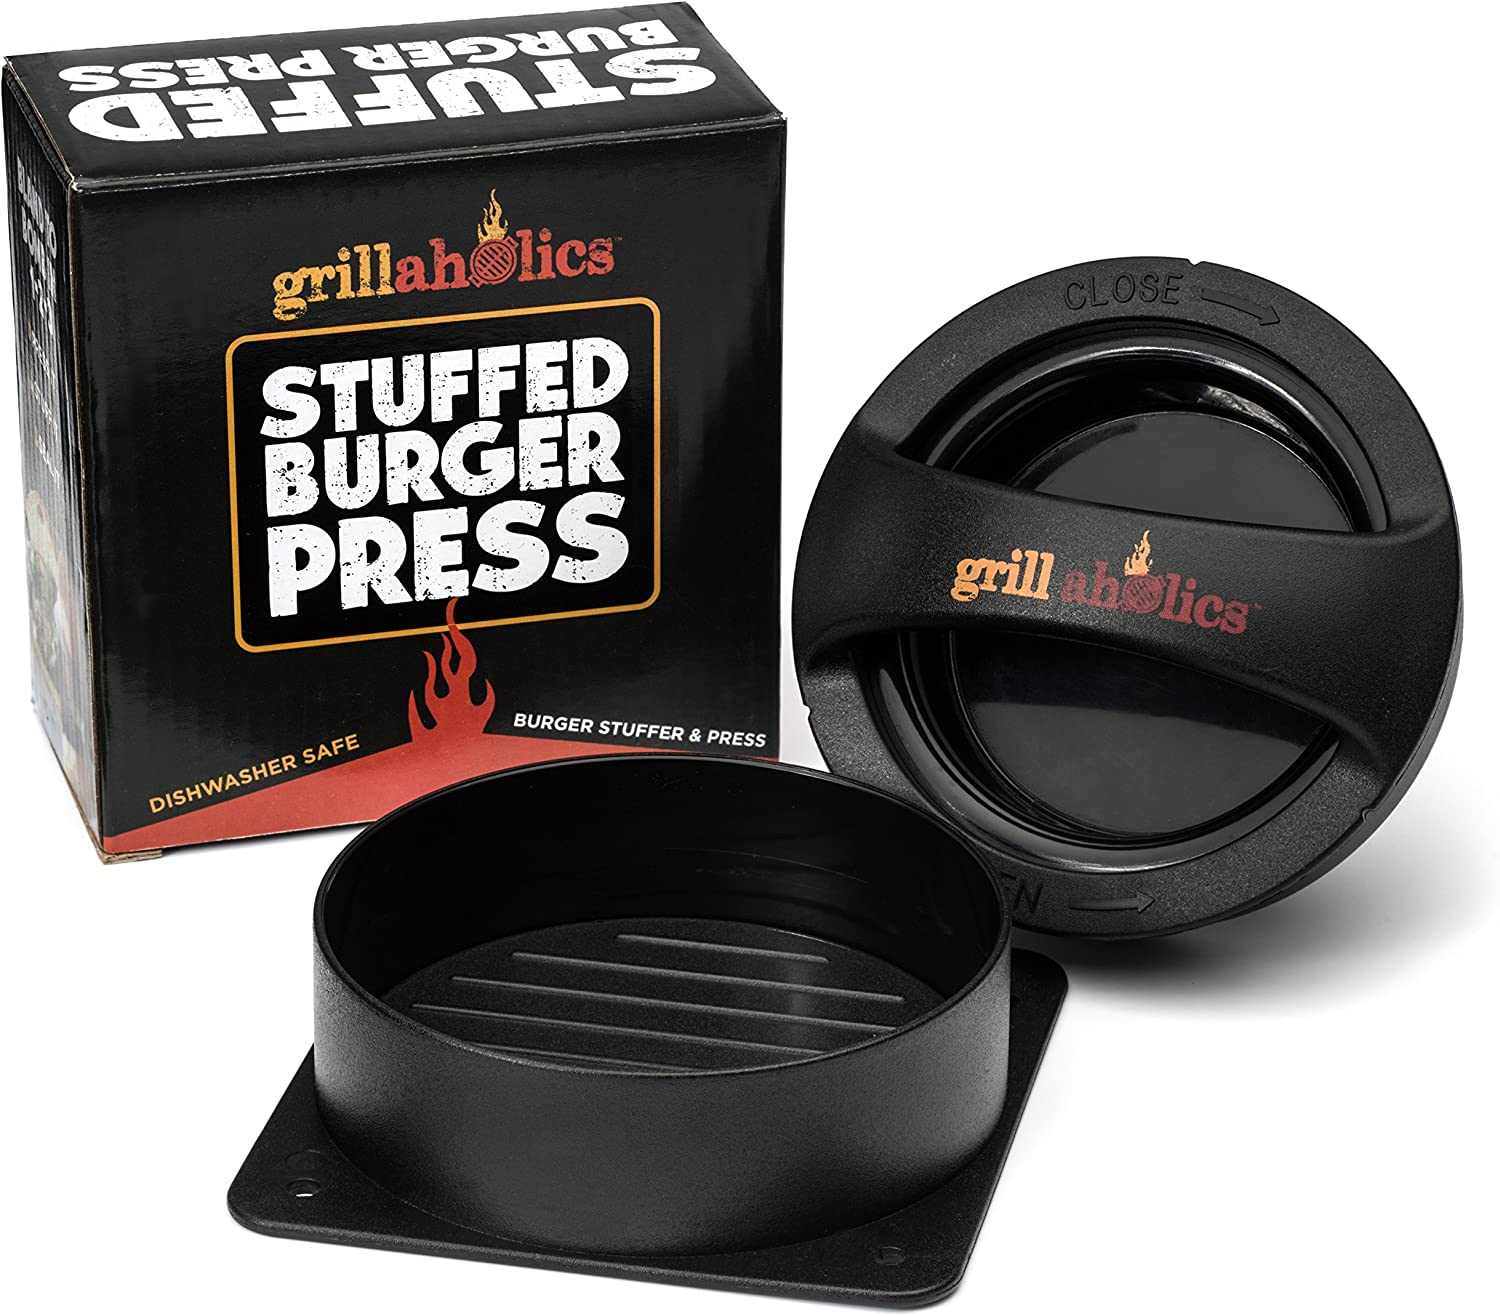 Grillaholics Gift Bundle – Includes Premium Stuffed Burger Press, Pair of Heavy Duty Barbecue Gloves, and Pair of Red Meat Claws – Perfect Grilling Accessories Package